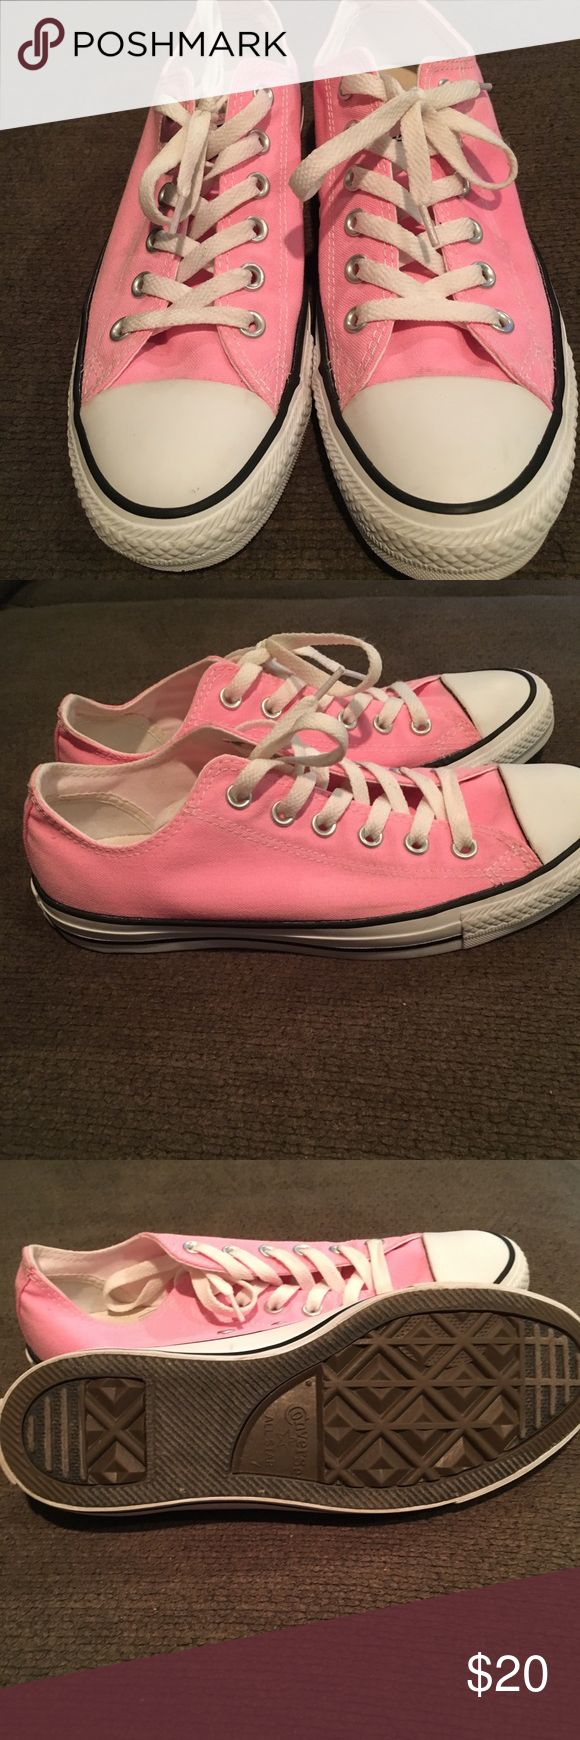 Converse Chuck Taylor Sneakers All Star Classic Chuck Taylor Sneakers Pink Lightly Worn Converse Shoes Sneakers